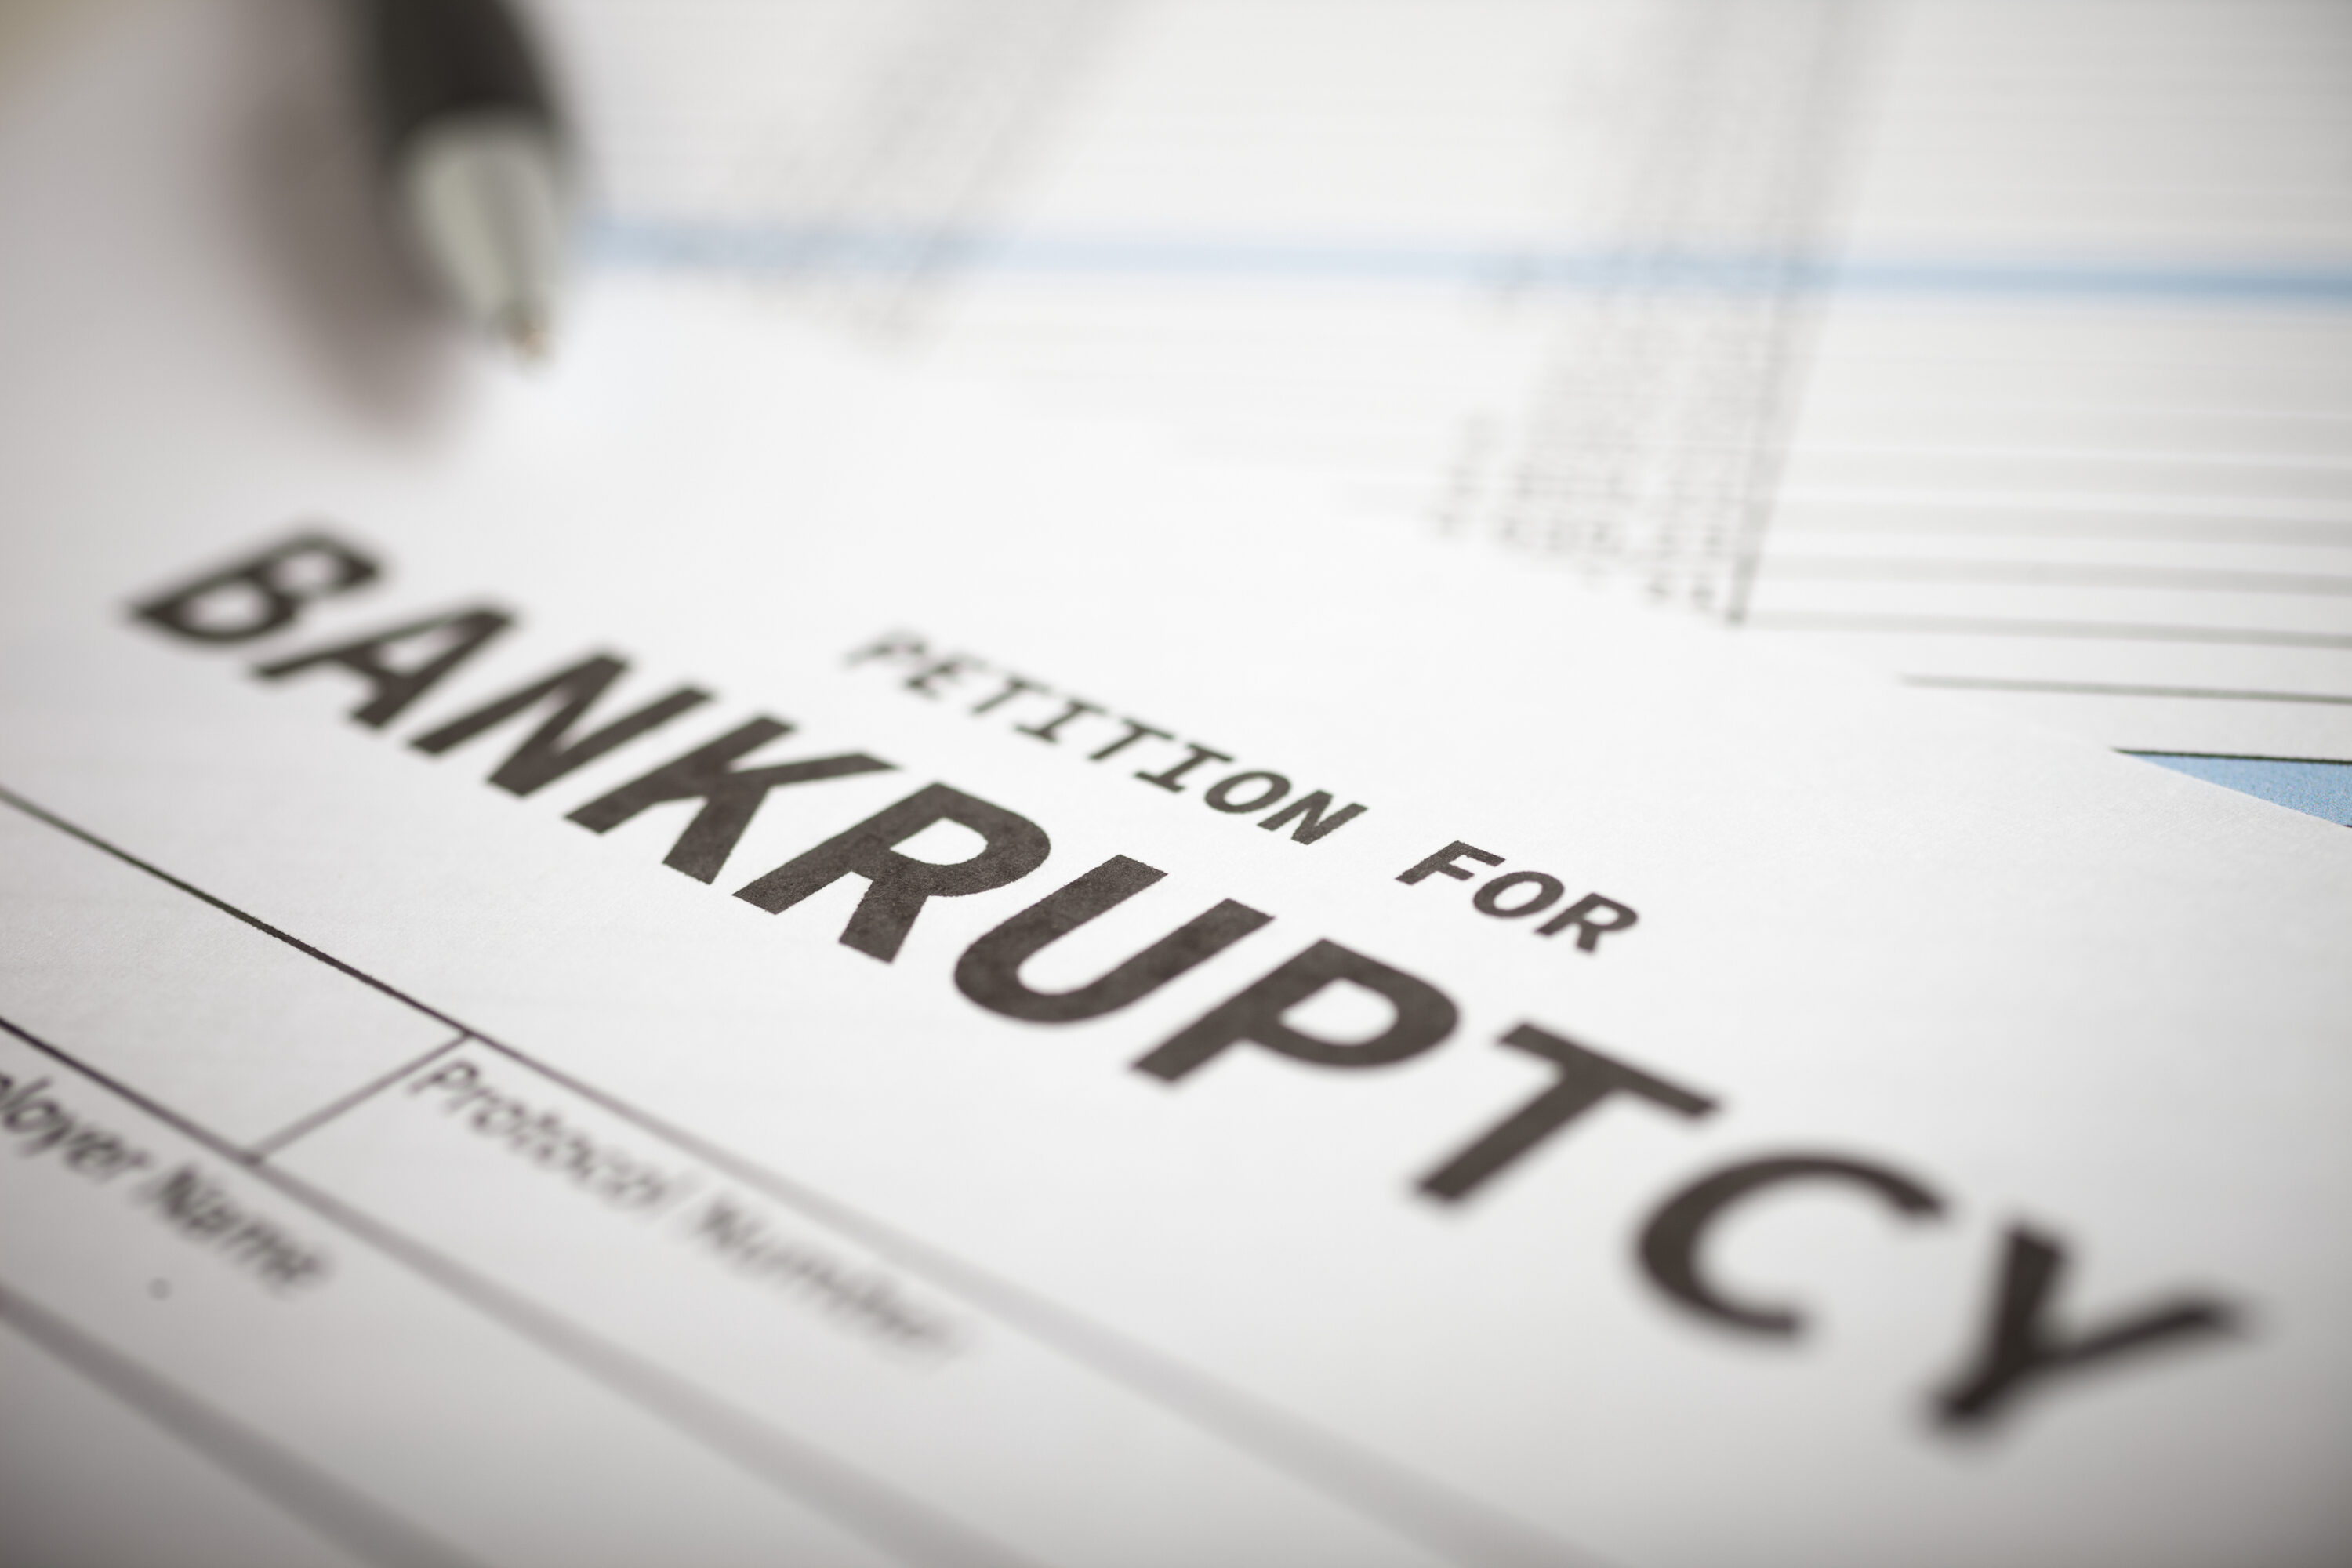 Amendments to the Bankruptcy Laws in the UAE